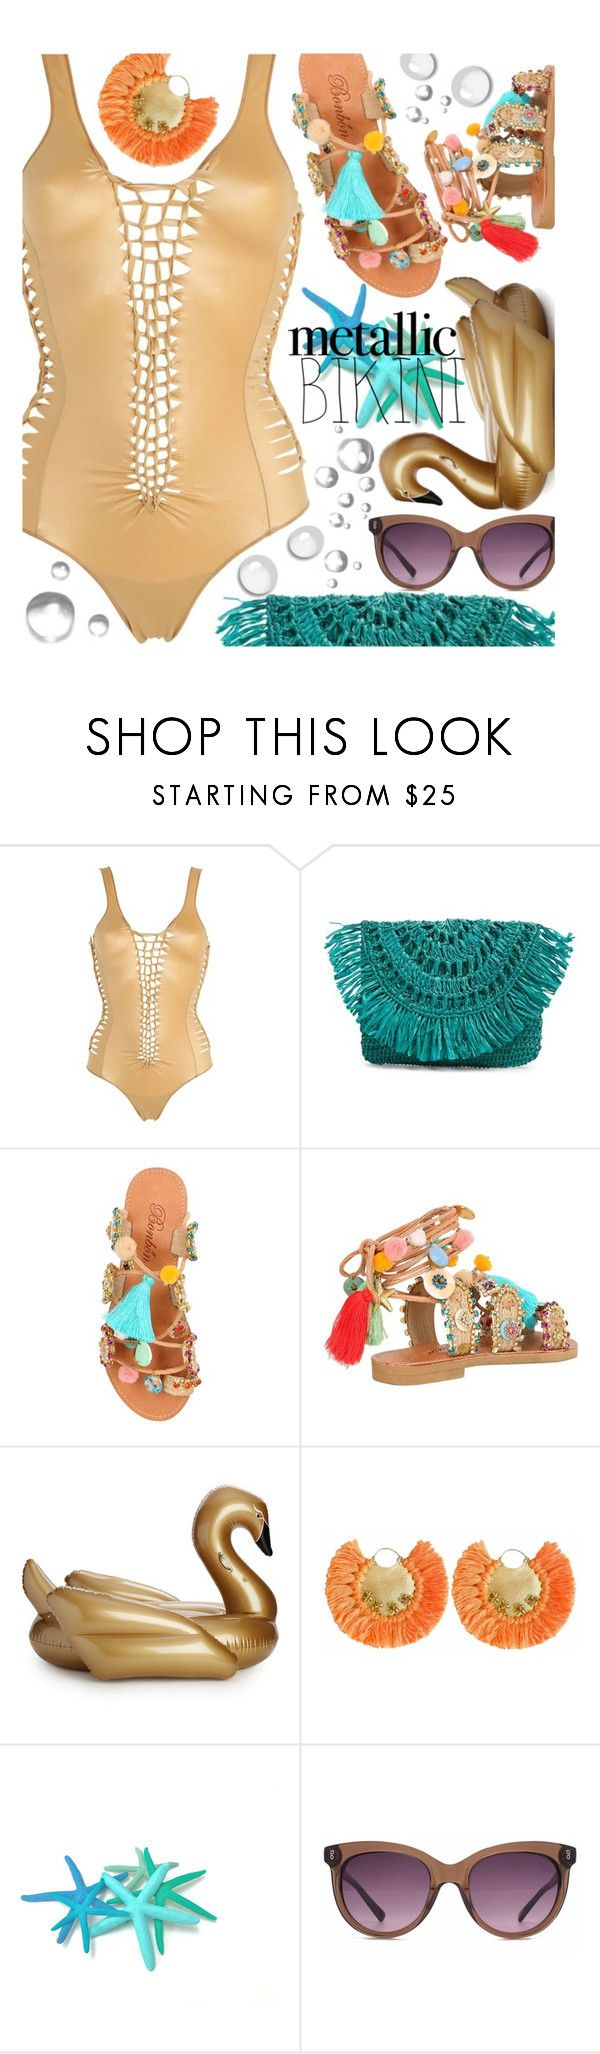 """""""Metallic Swimsuit"""" by maranella ❤ liked on Polyvore featuring PIN UP STARS, Mar y Sol, Bonbon, Funboy, Ricardo Rodriguez, HOOK LDN, poolfloat and metallicswimwear"""